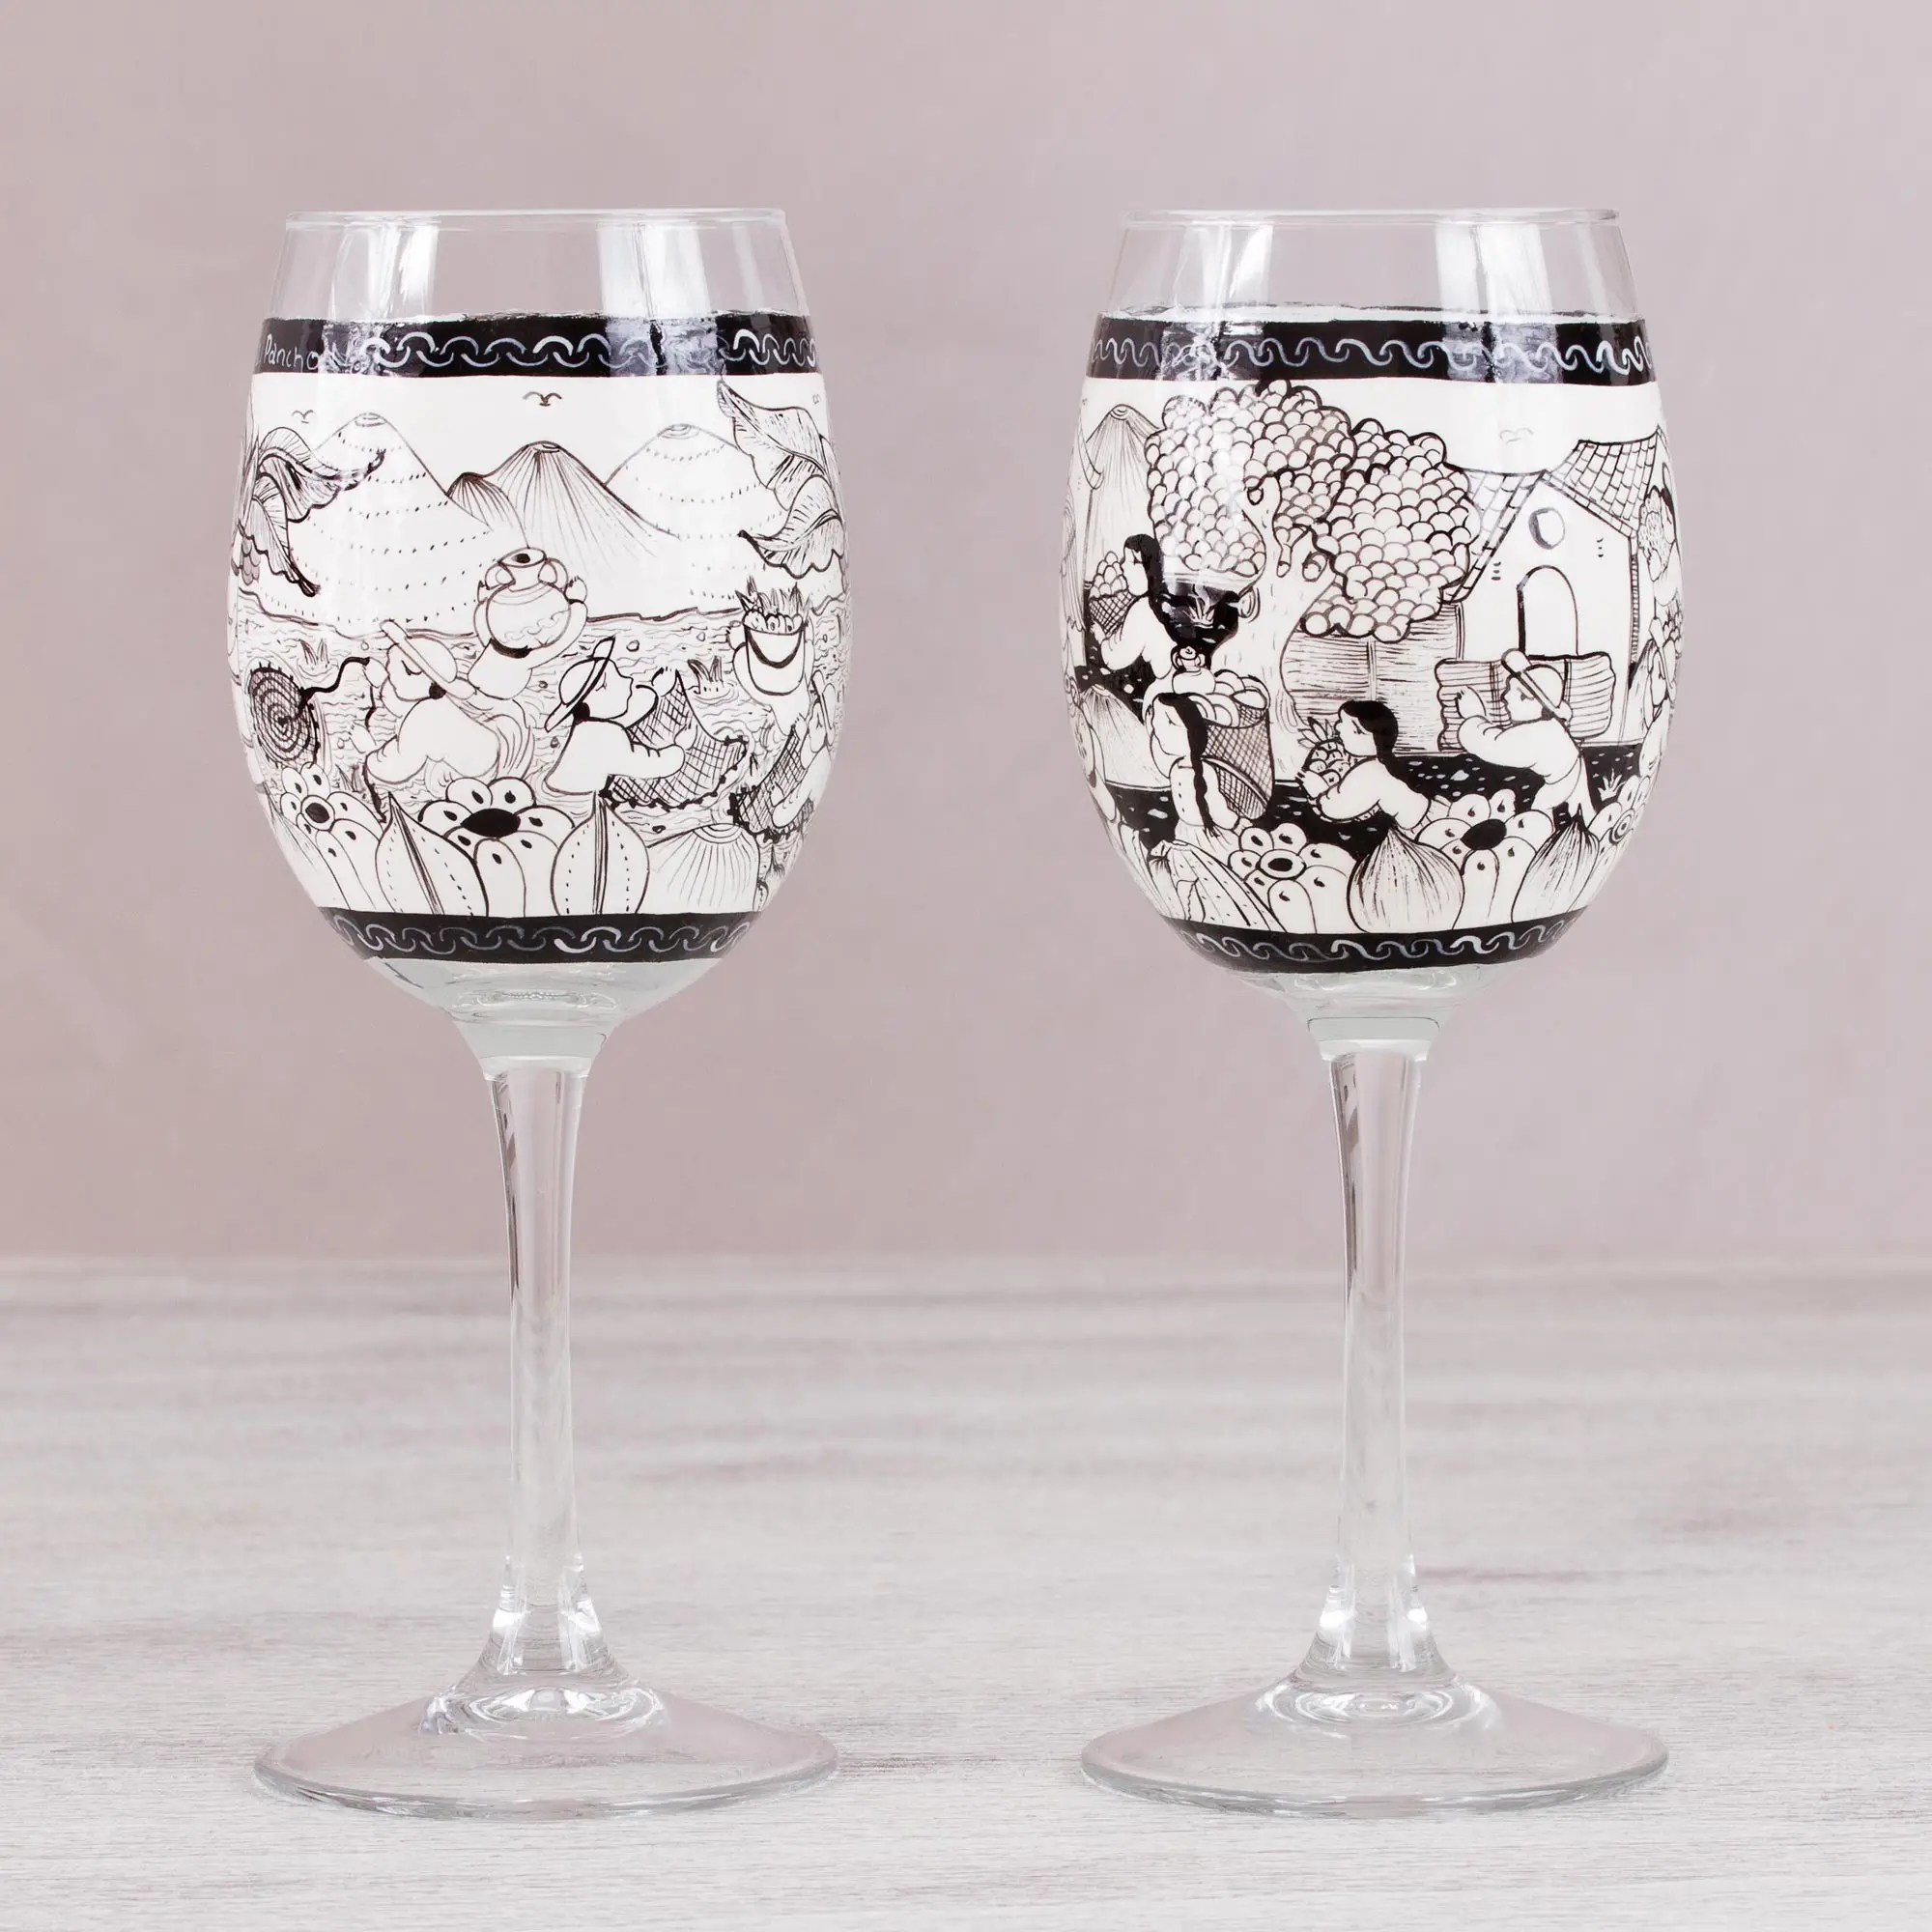 Wine Glasses Two Hand Painted Village Themed Wine Glasses From Mexico Cup Of History